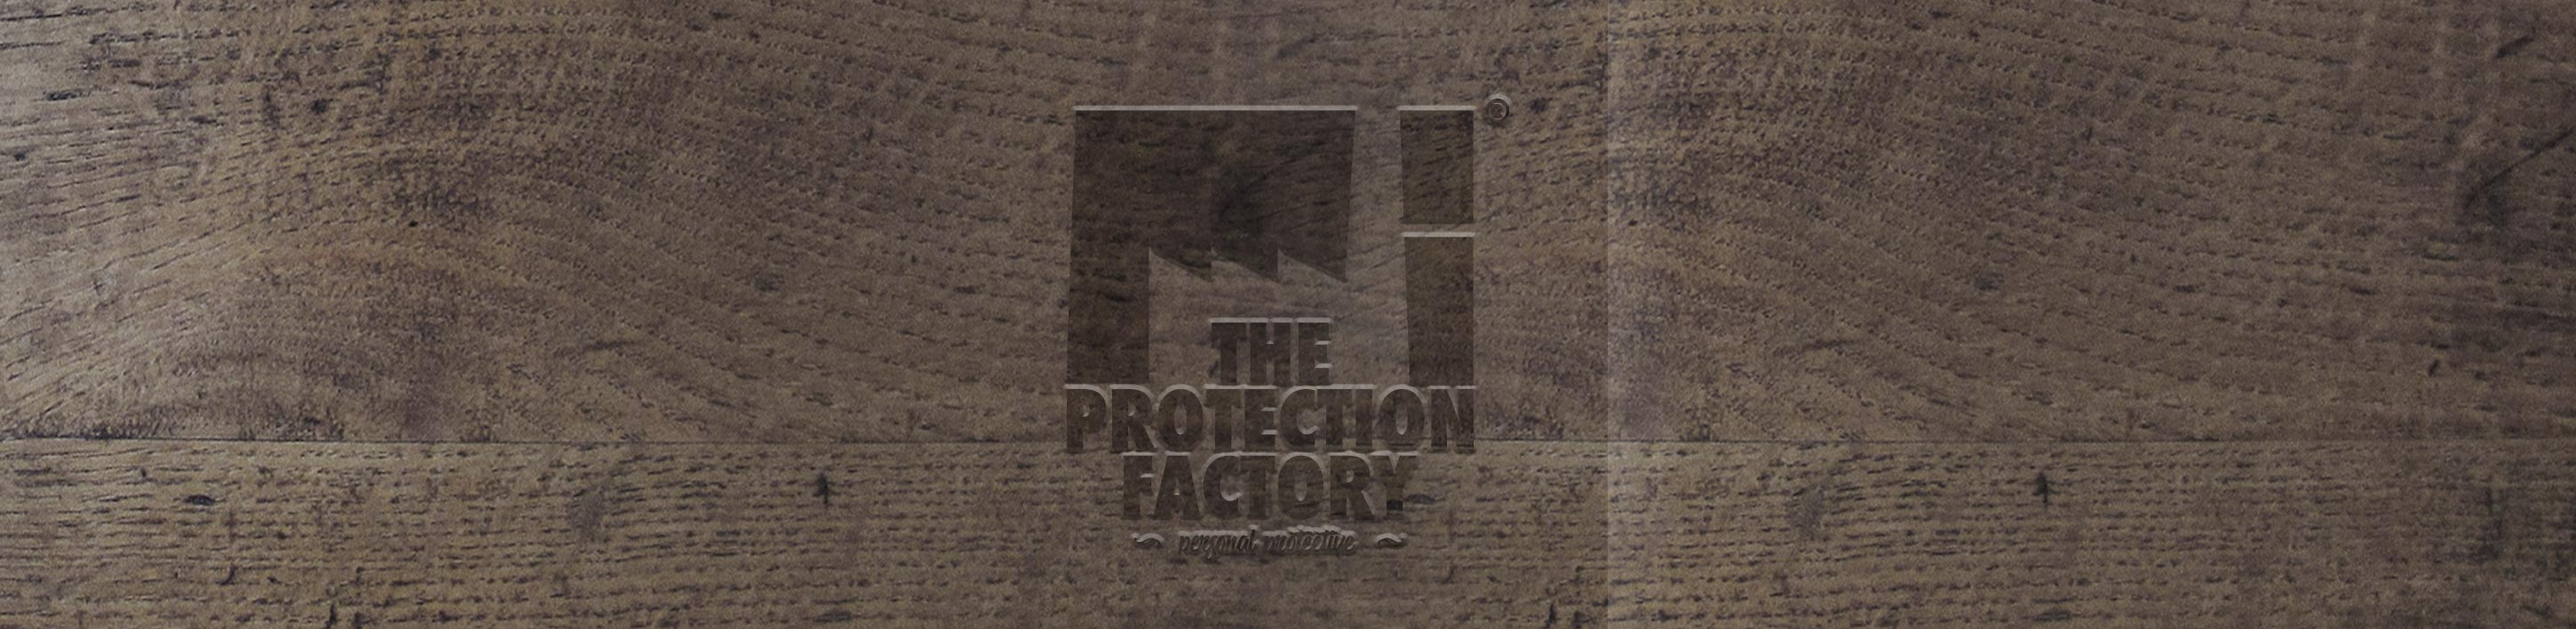 The Protection Factory